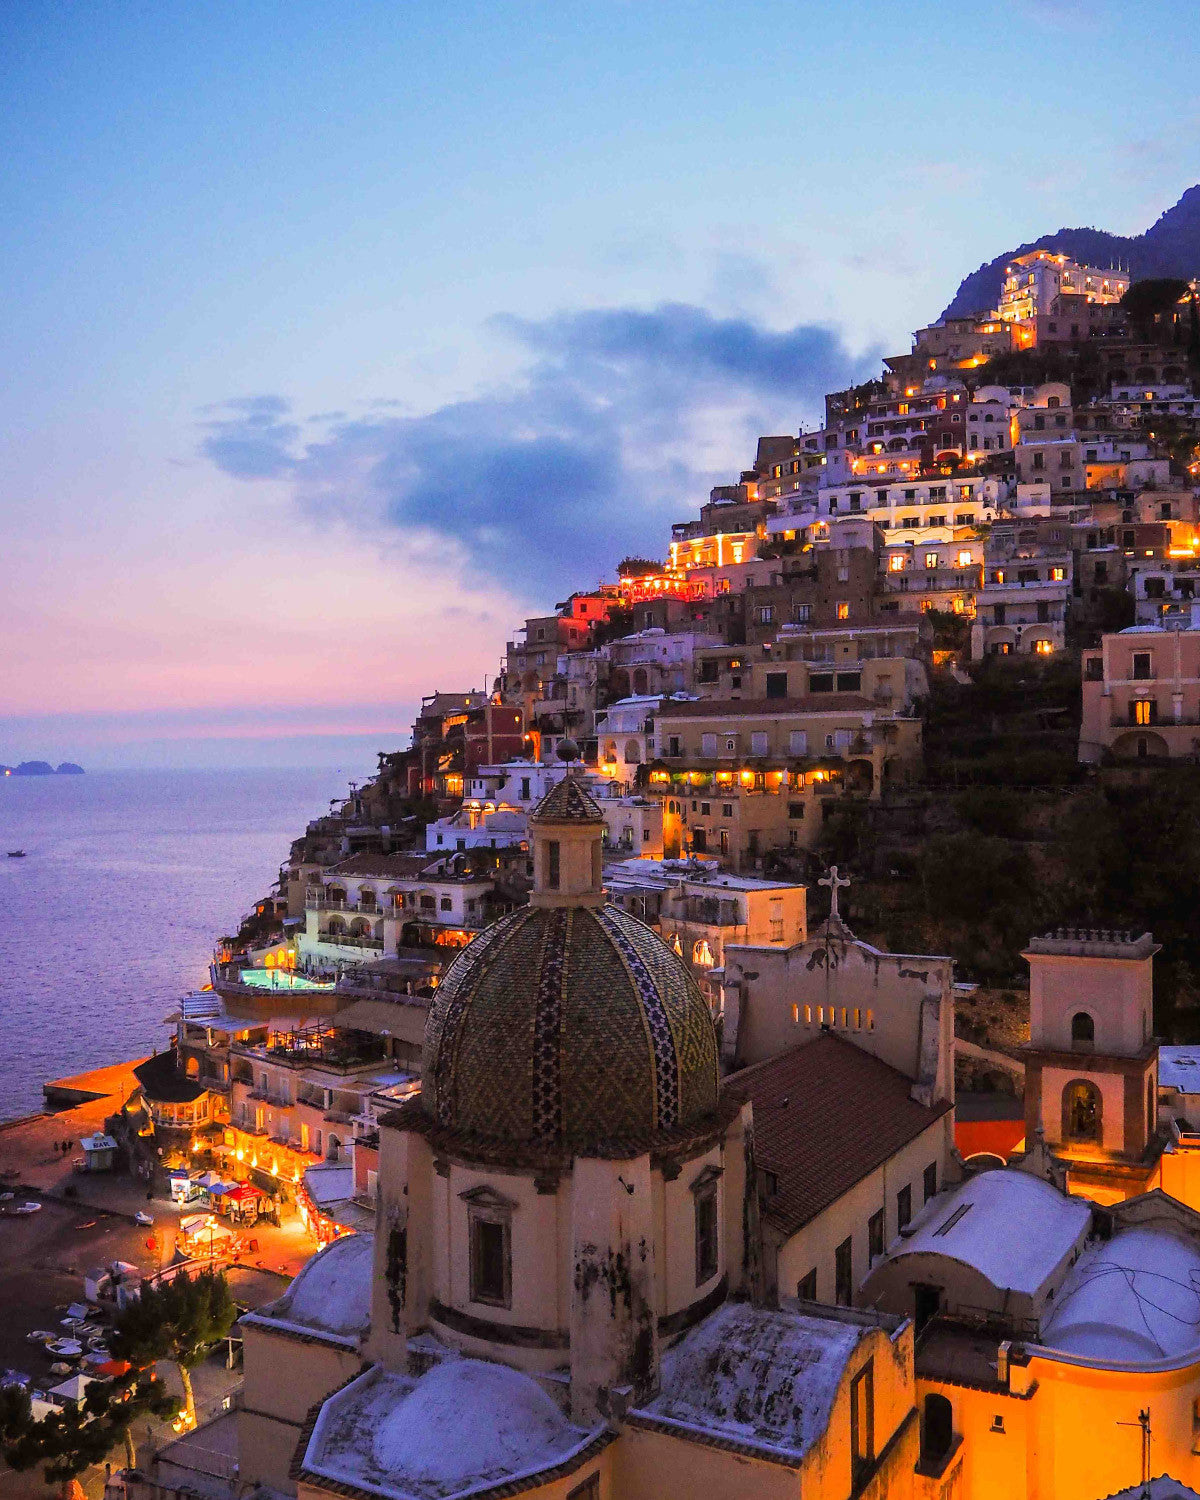 Positano by night - The Laughing Shooter for La Maison Talulah